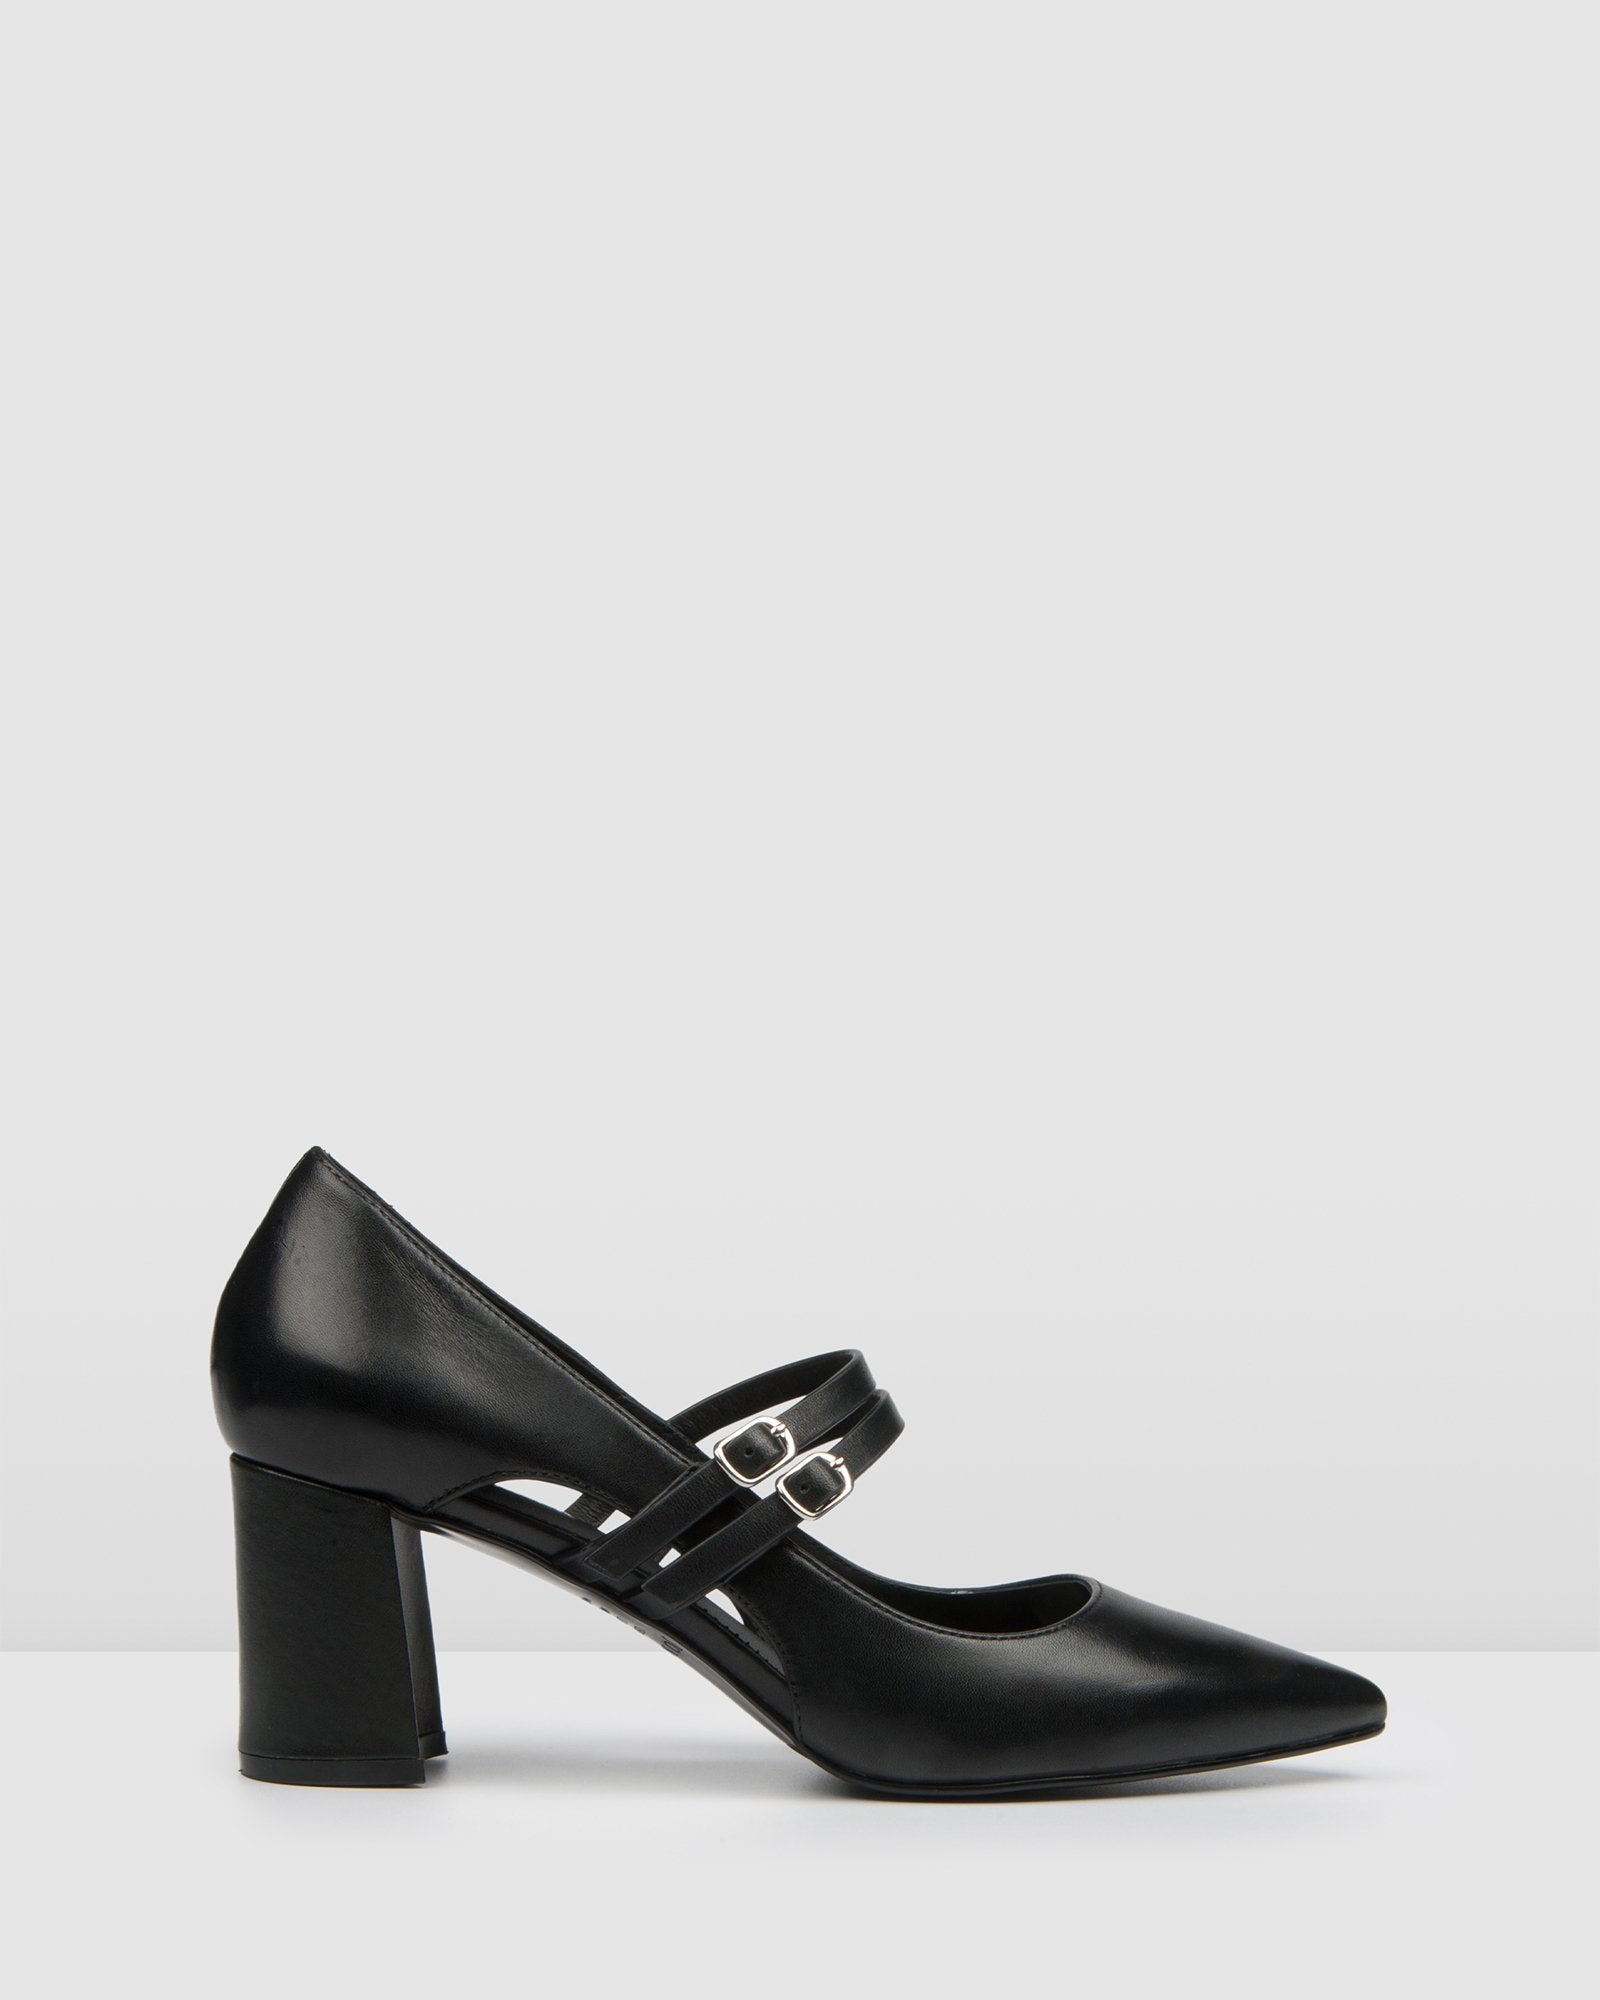 IVY MID HEELS BLACK LEATHER